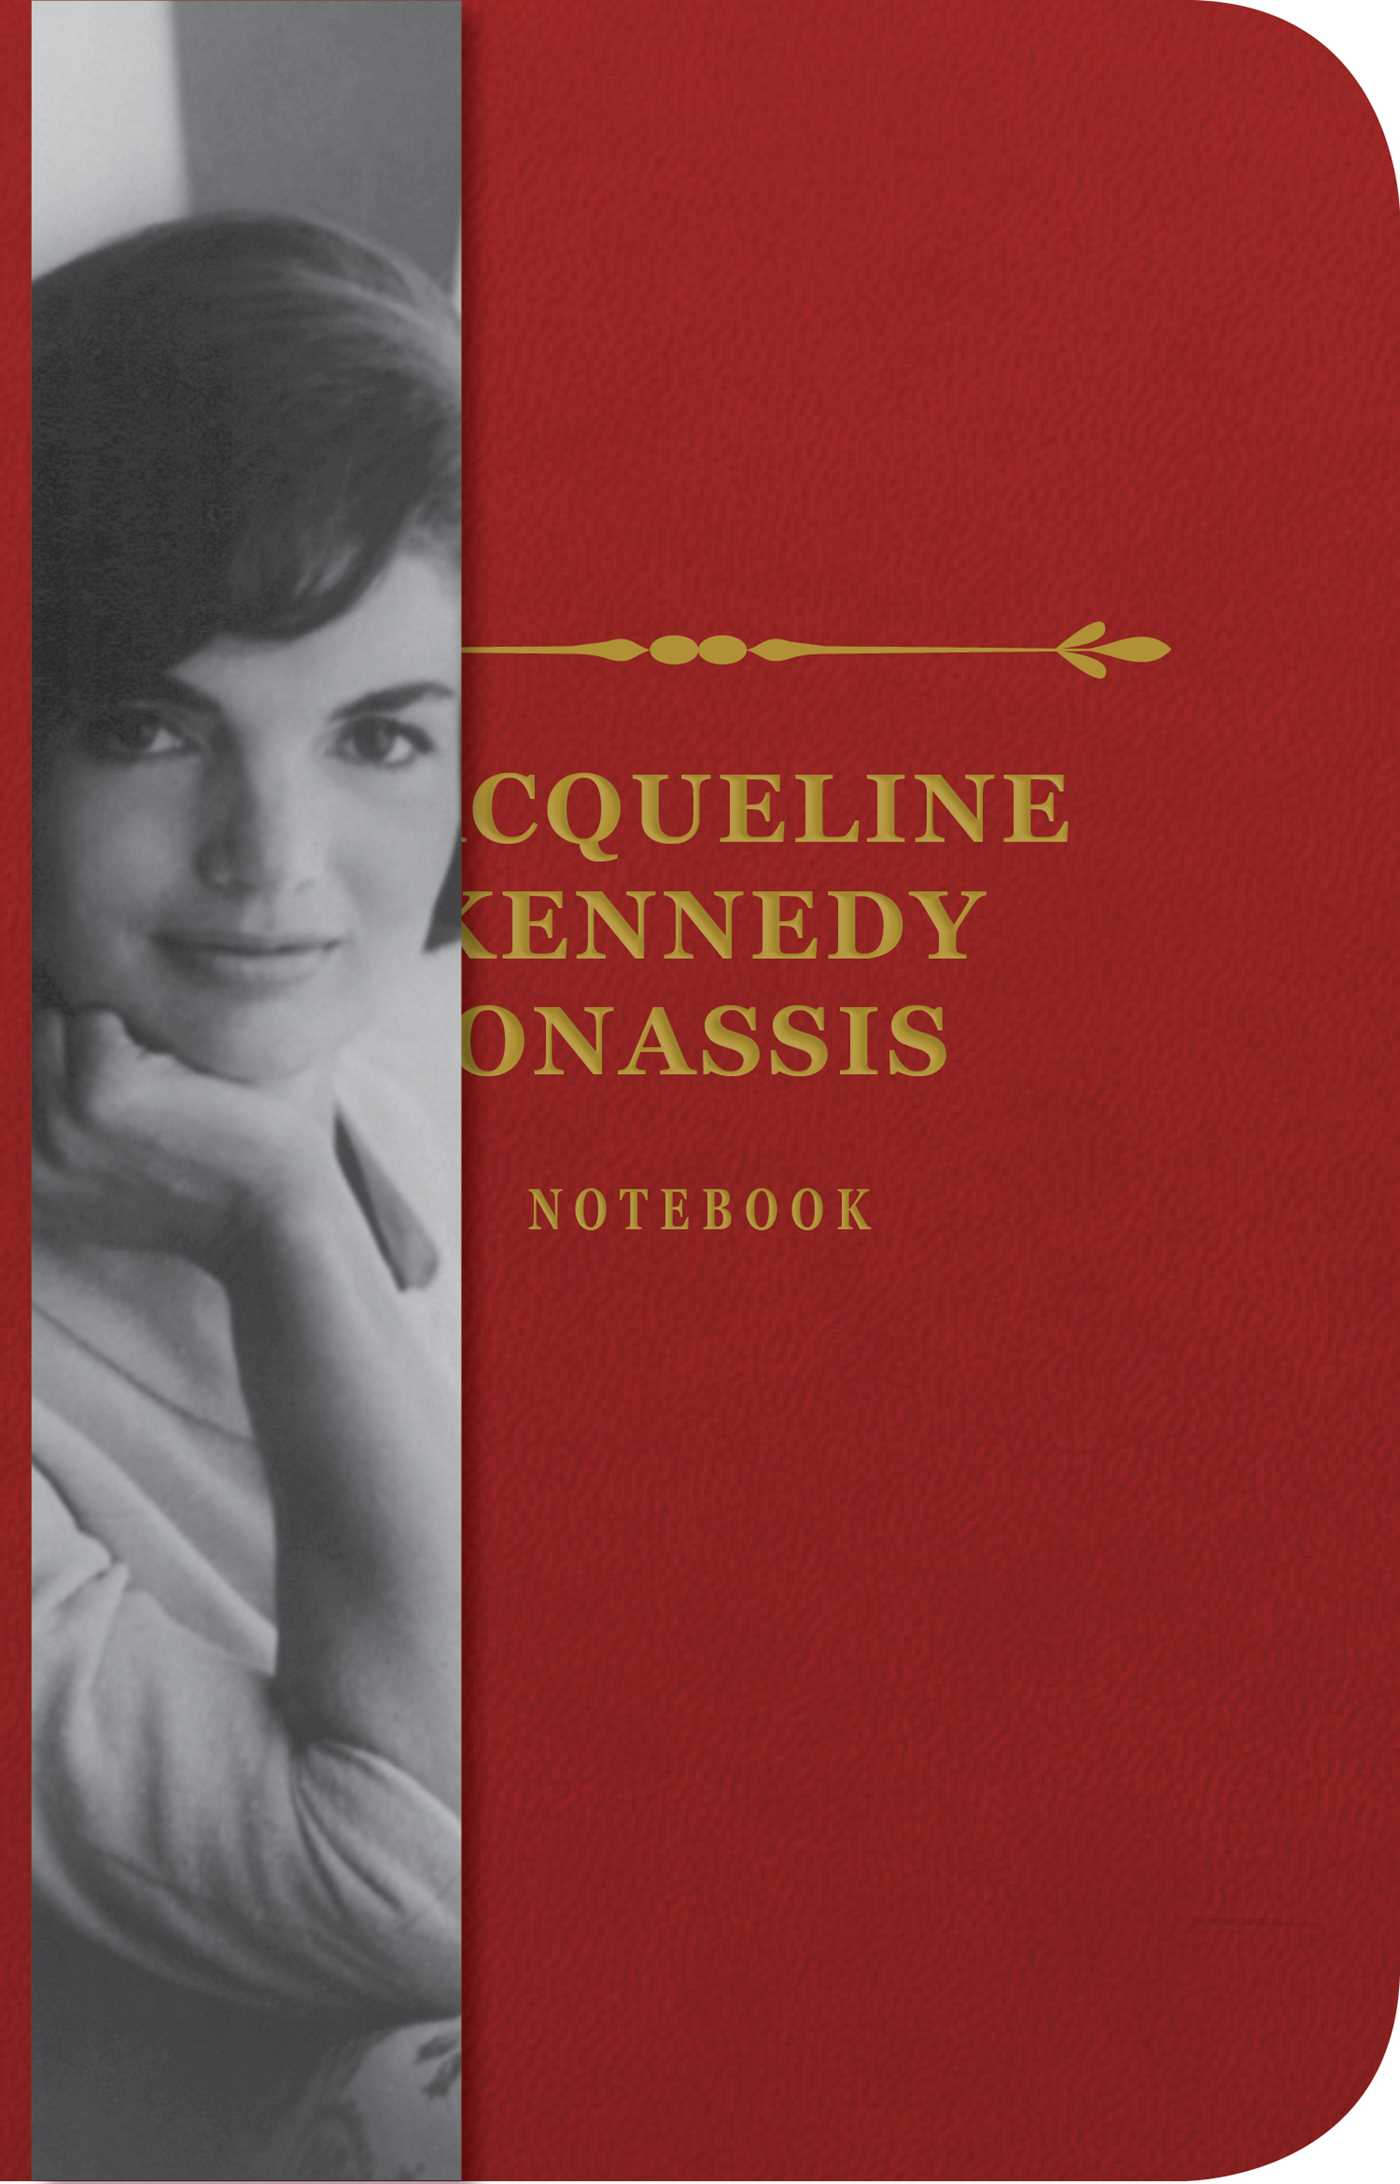 The jacqueline kennedy onassis notebook 9781604337846 hr